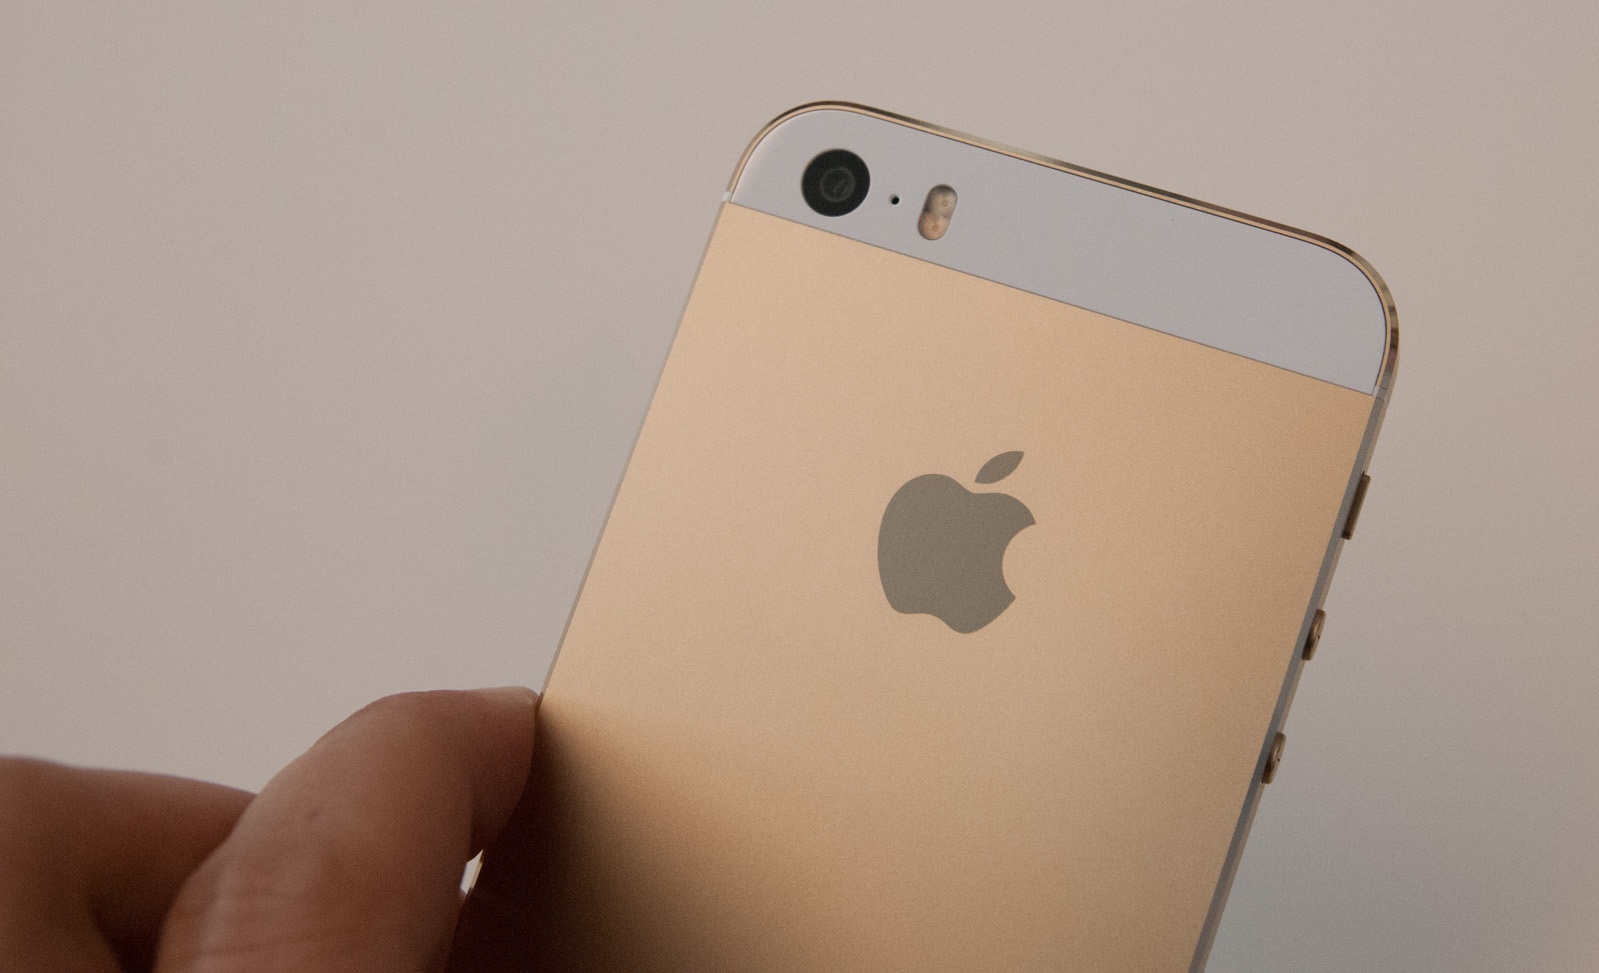 Hands On With The New Iphone 5s